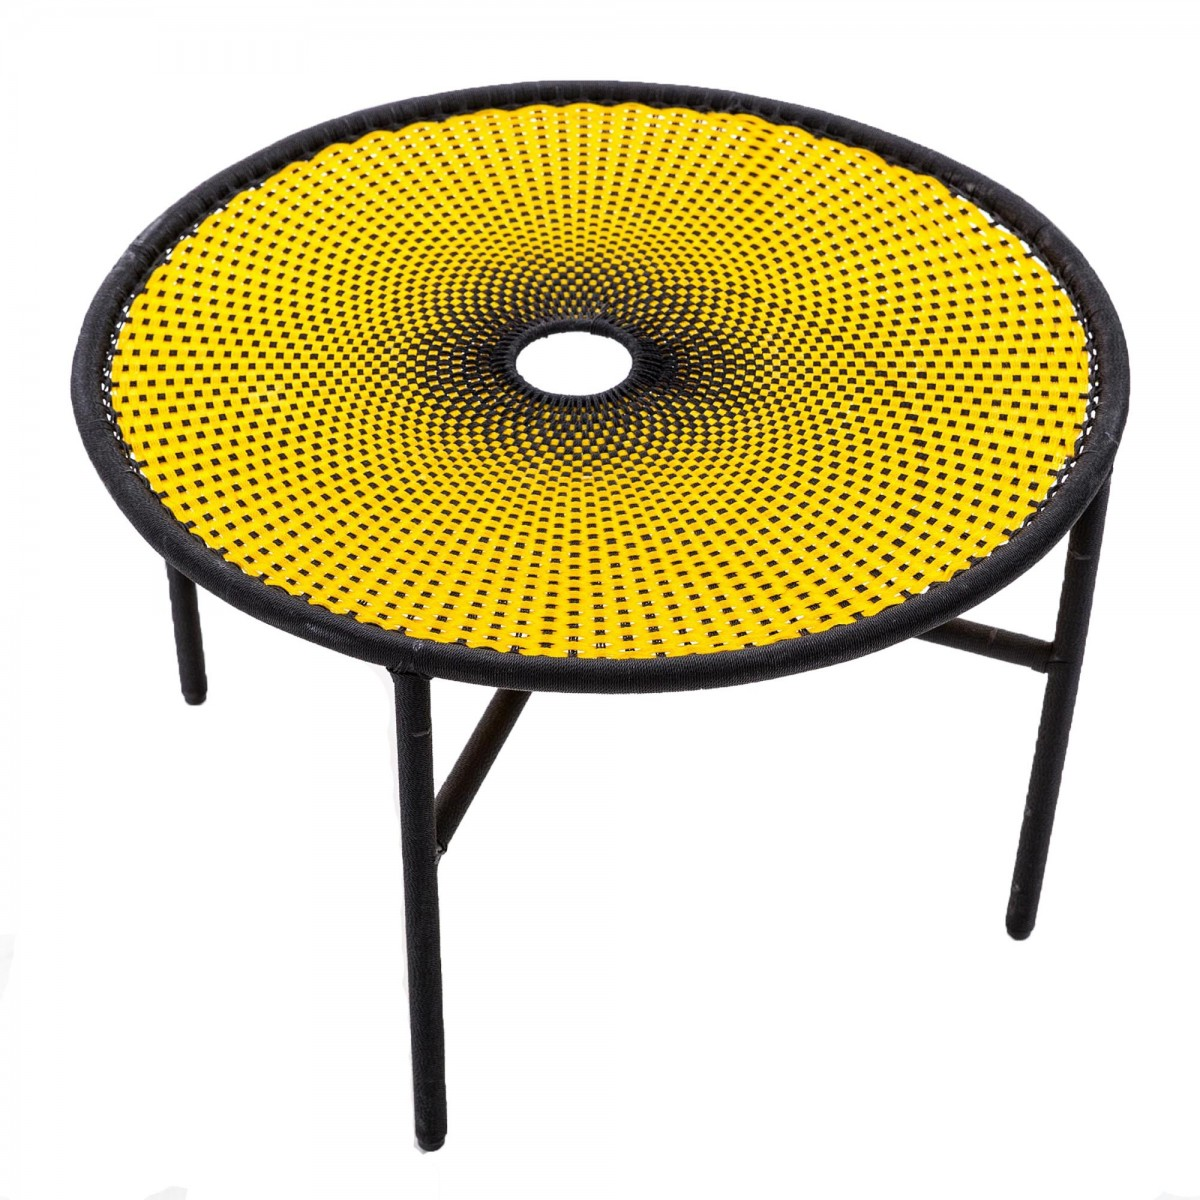 banjooli coffee table l yellow black moroso. Black Bedroom Furniture Sets. Home Design Ideas